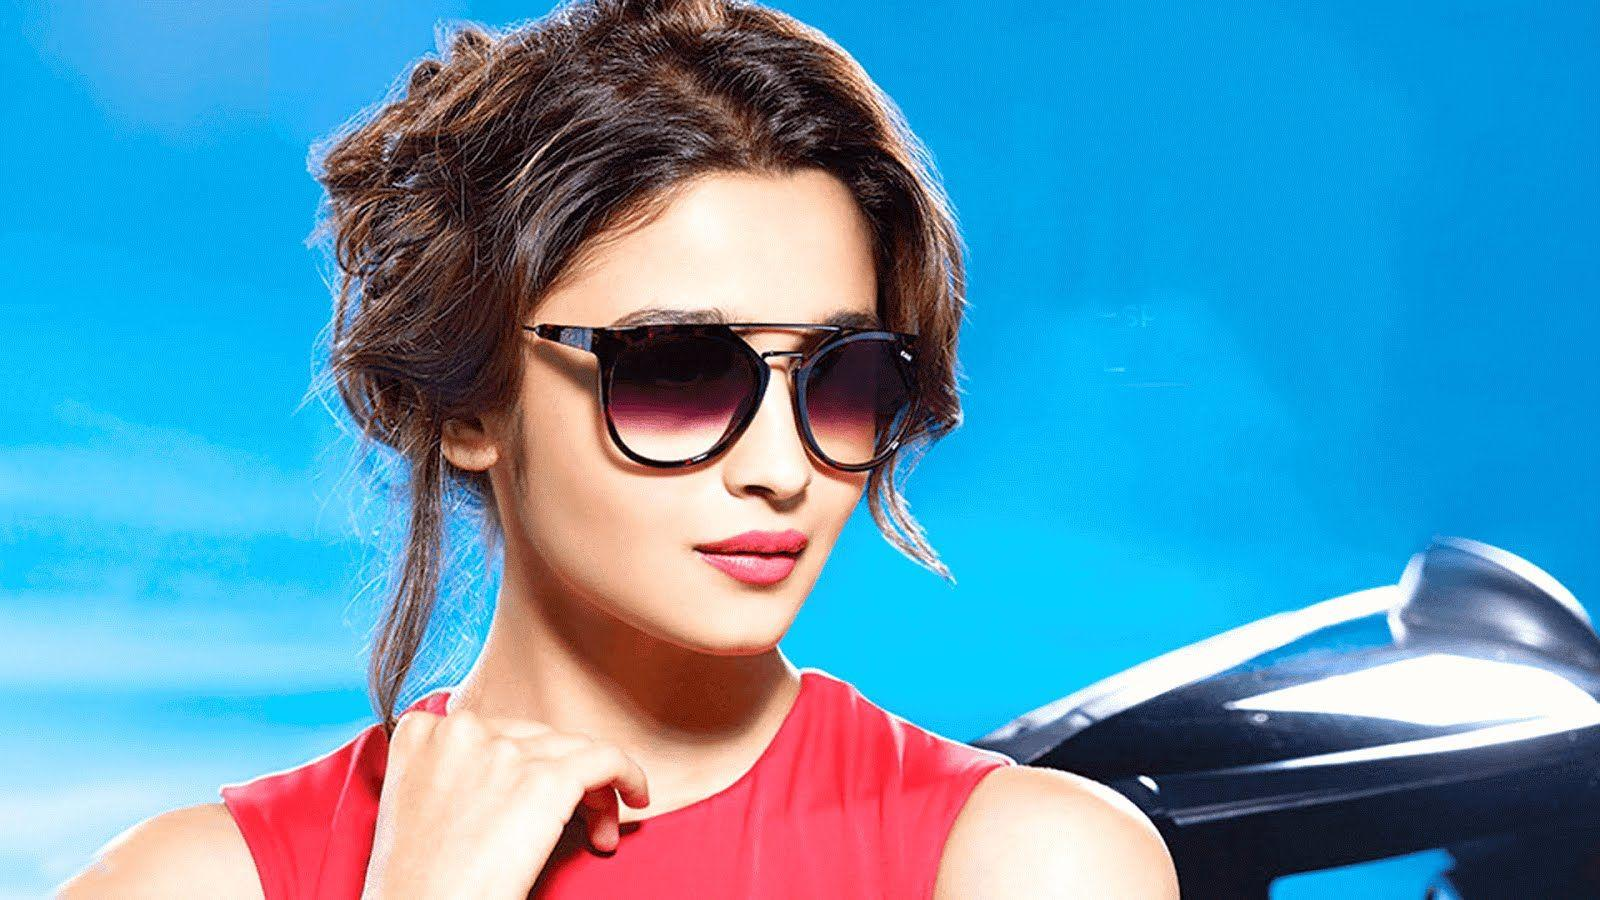 Cute Actress Alia Bhatt HD Wallpapers and Pics Download For Whatsapp